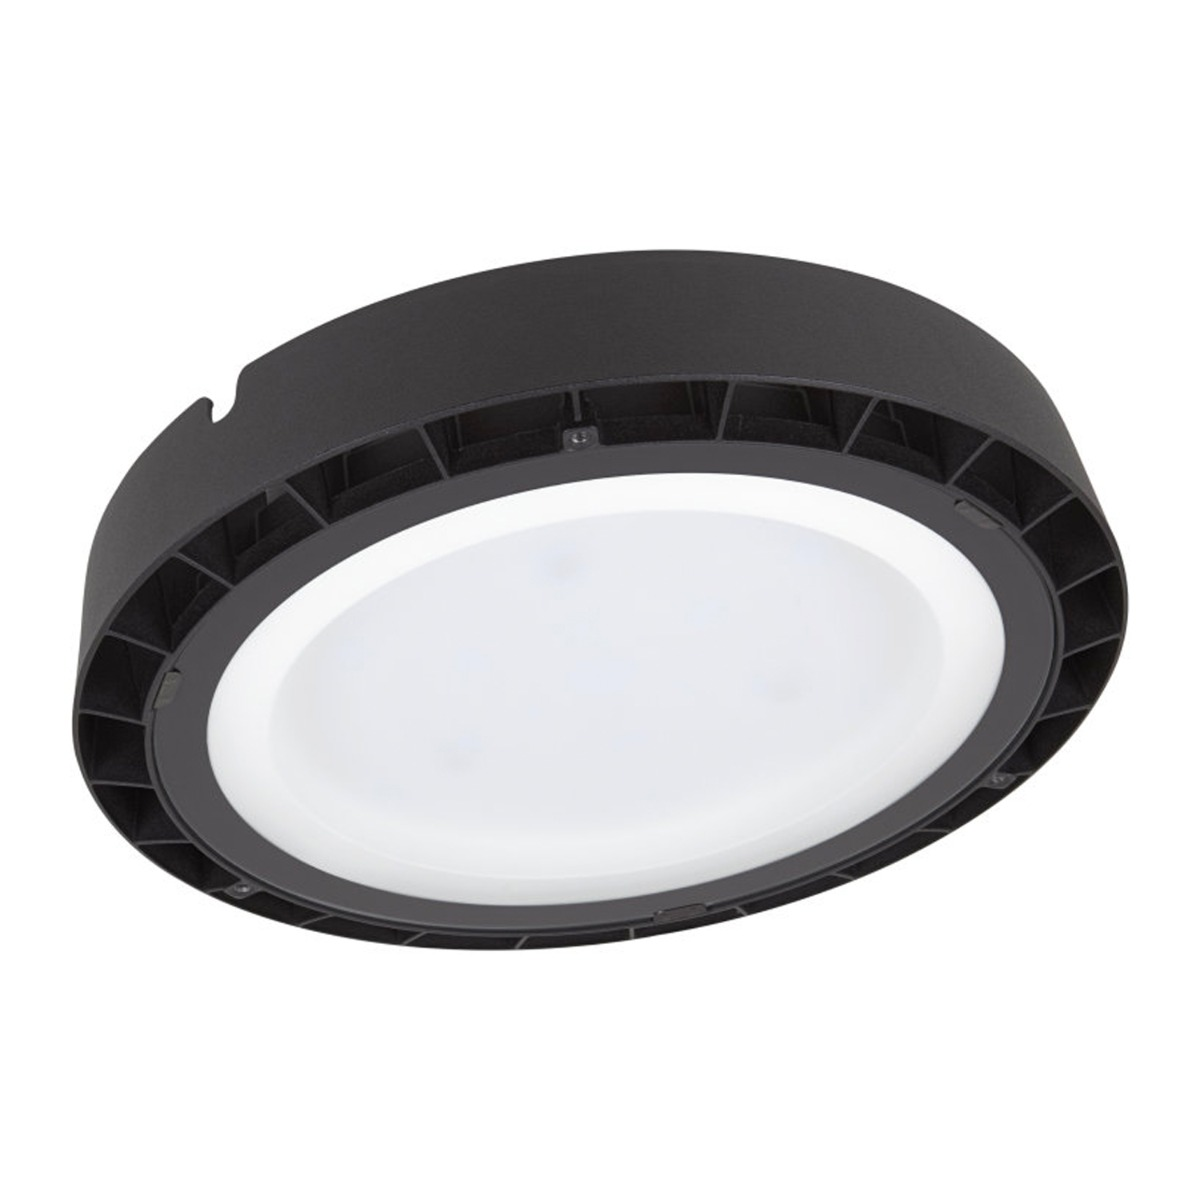 Ledvance LED High Bay Value 100W 4000K IP65 10000lm 100D | Koel Wit - Vervangt 200W